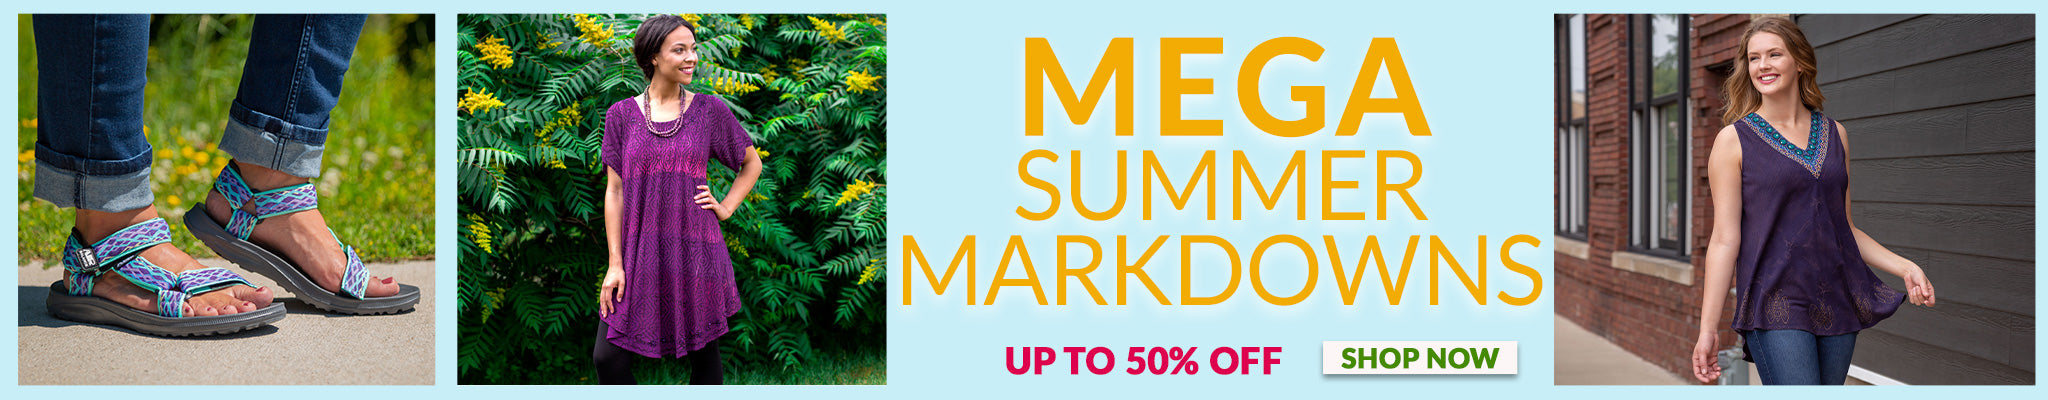 Mega Summer Markdowns